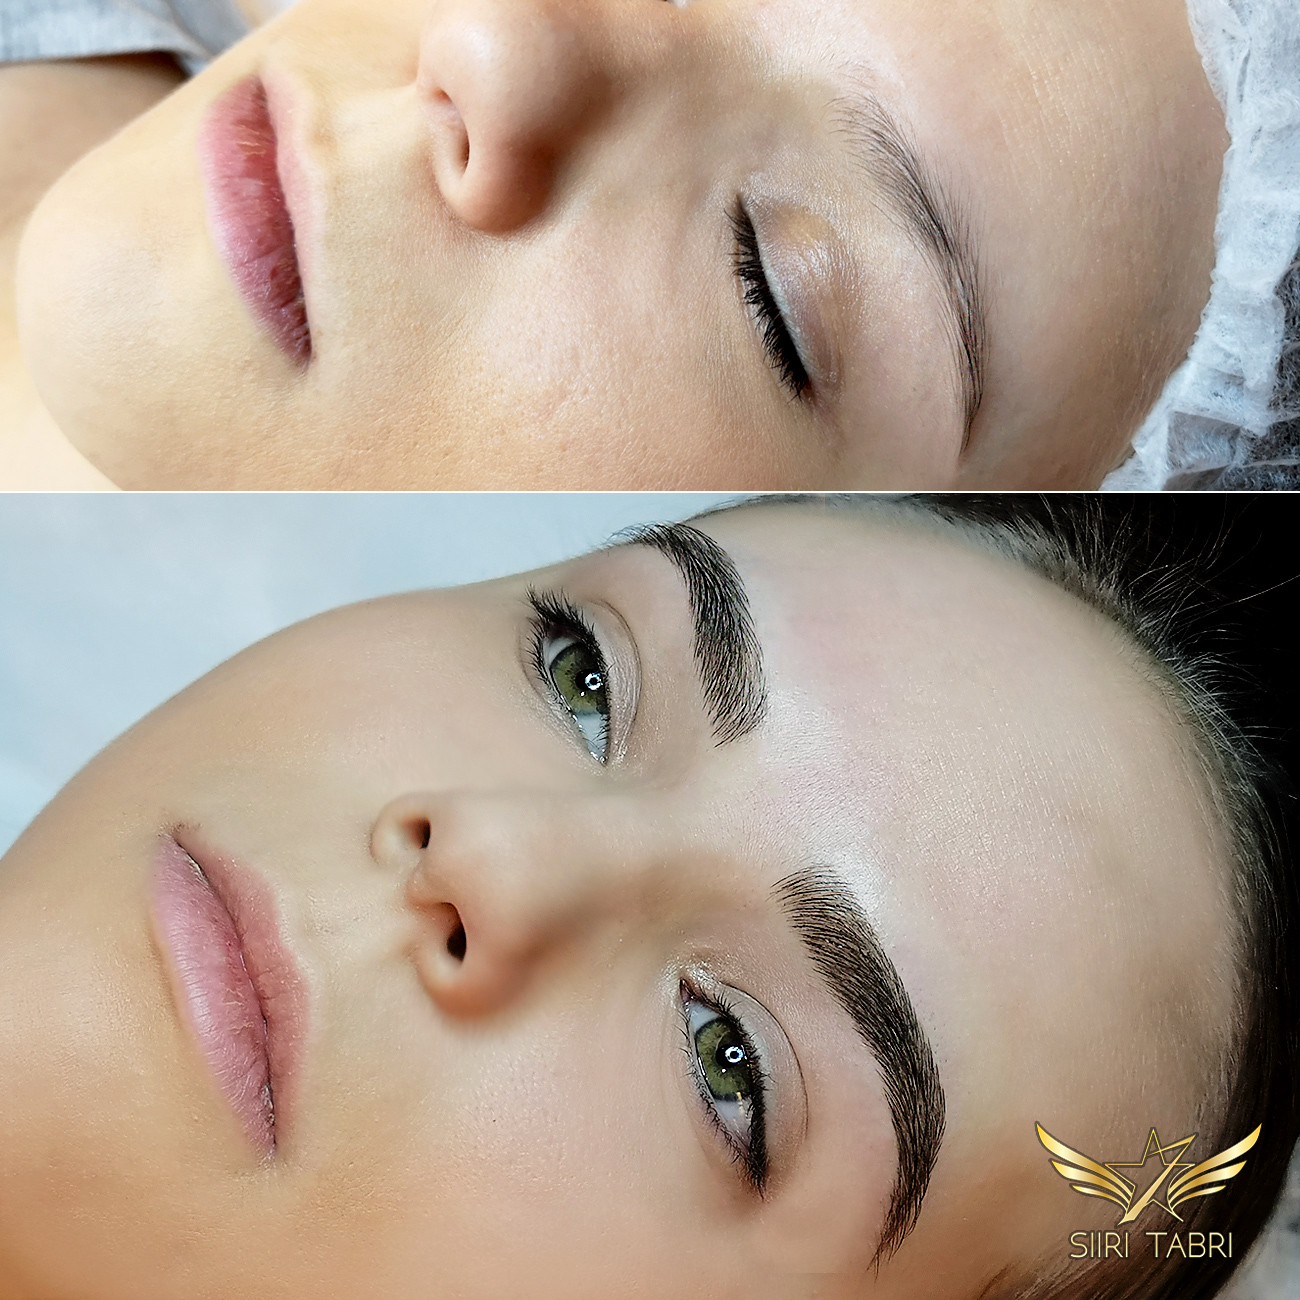 Light microblading. What an incredible change! Re-shaped and re-formed with Light microblading.